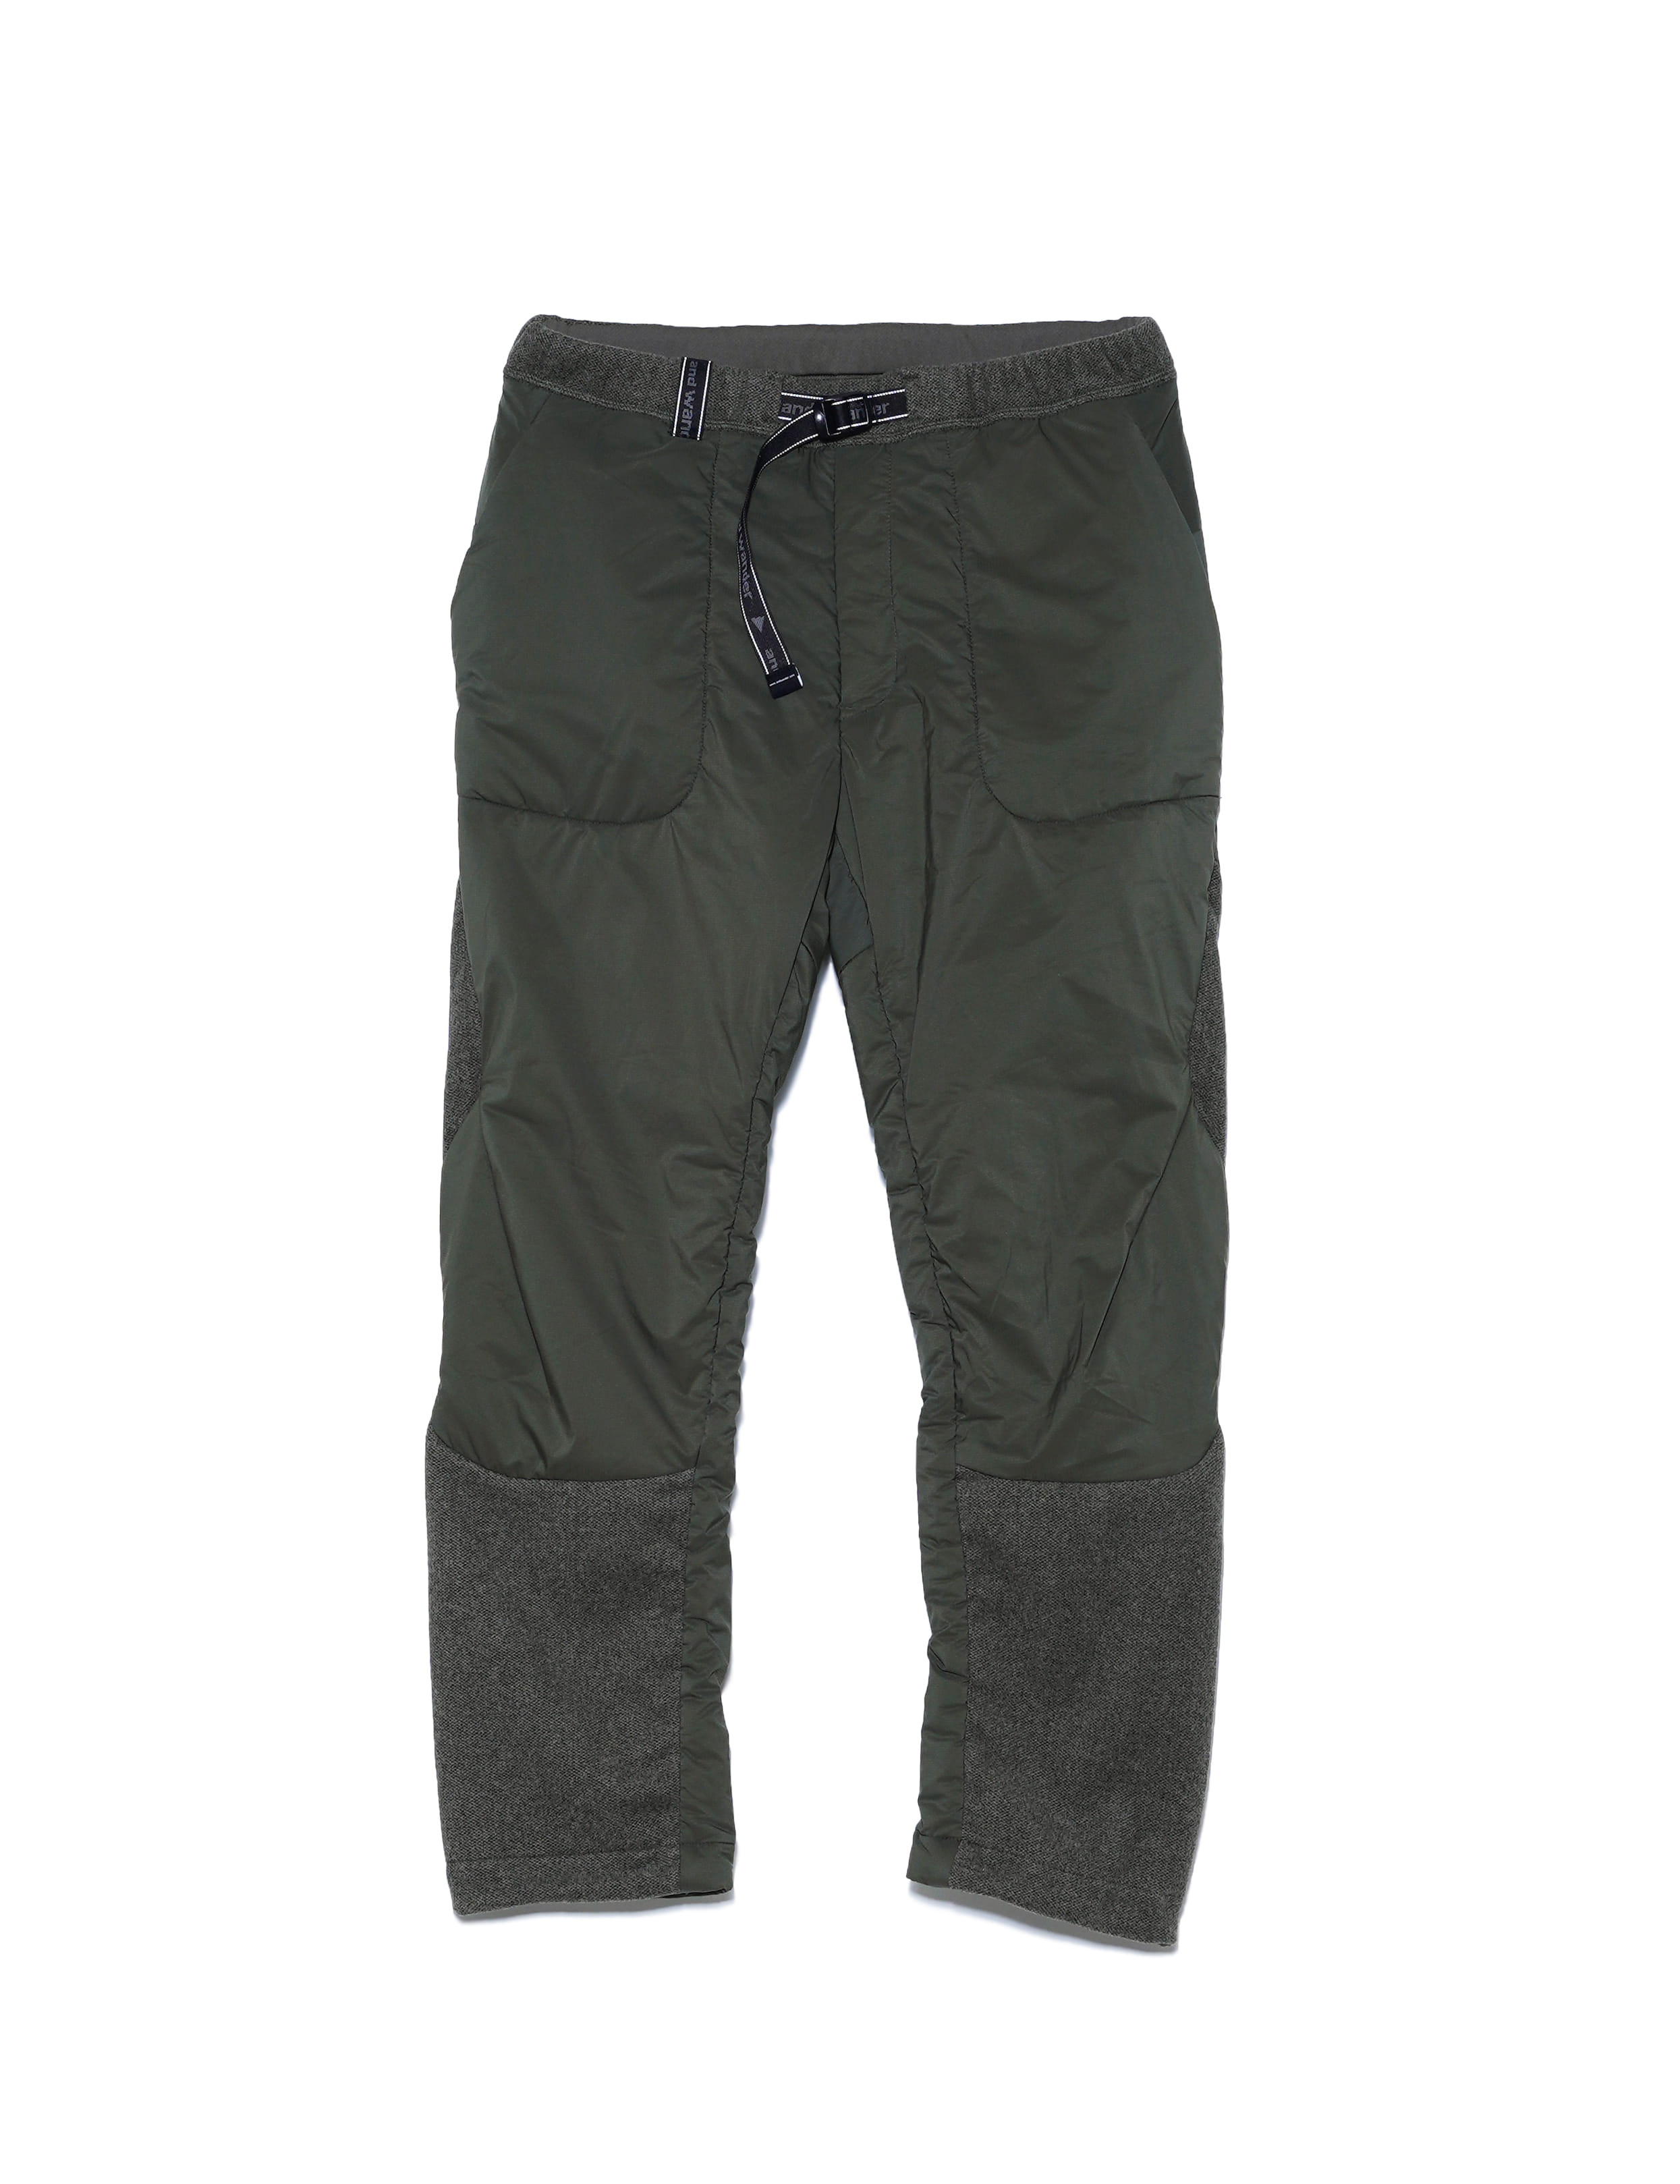 TOP FLEECE PANTS (KHAKI)